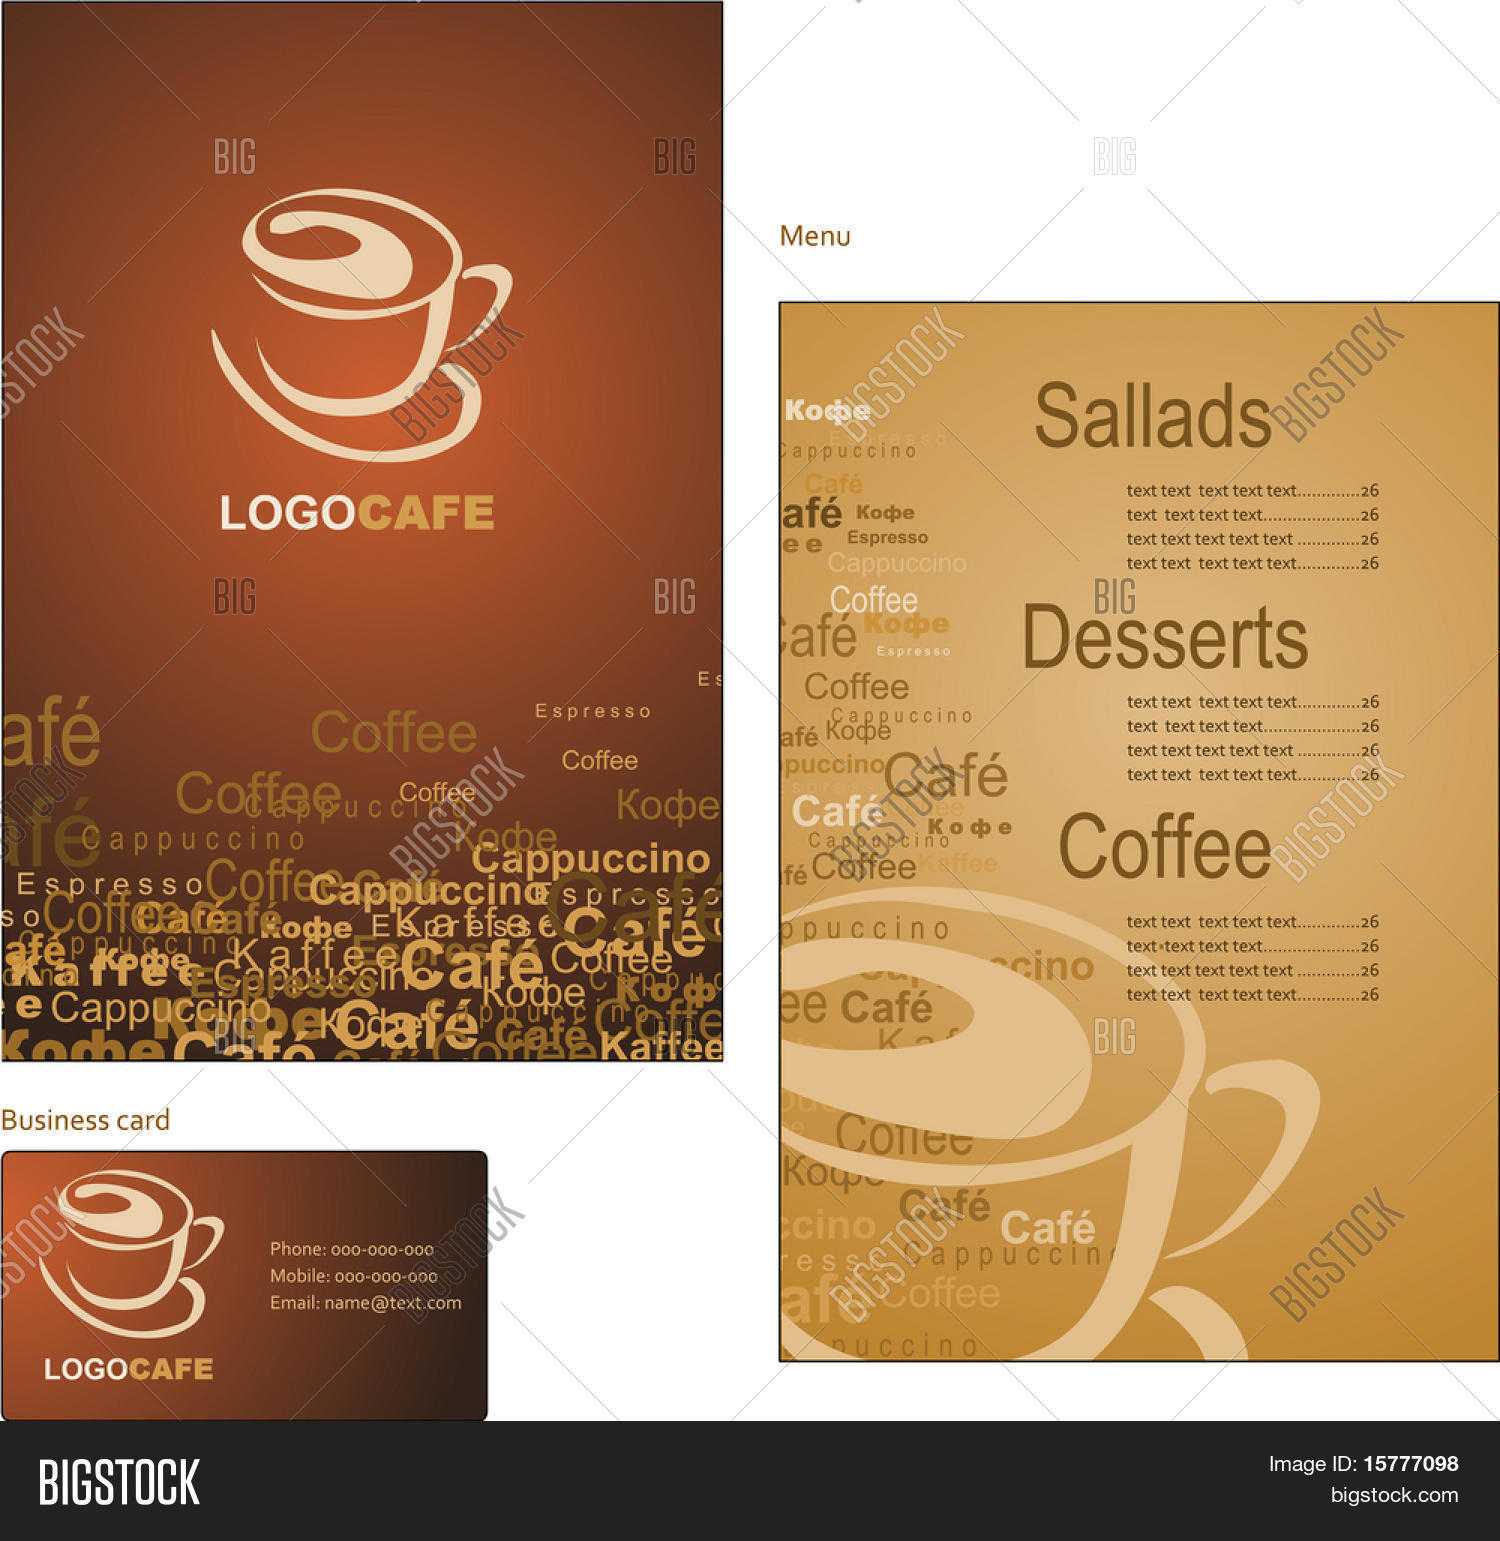 Template designs menu vector photo free trial bigstock template designs of menu and business card for coffee shop and restaurant wajeb